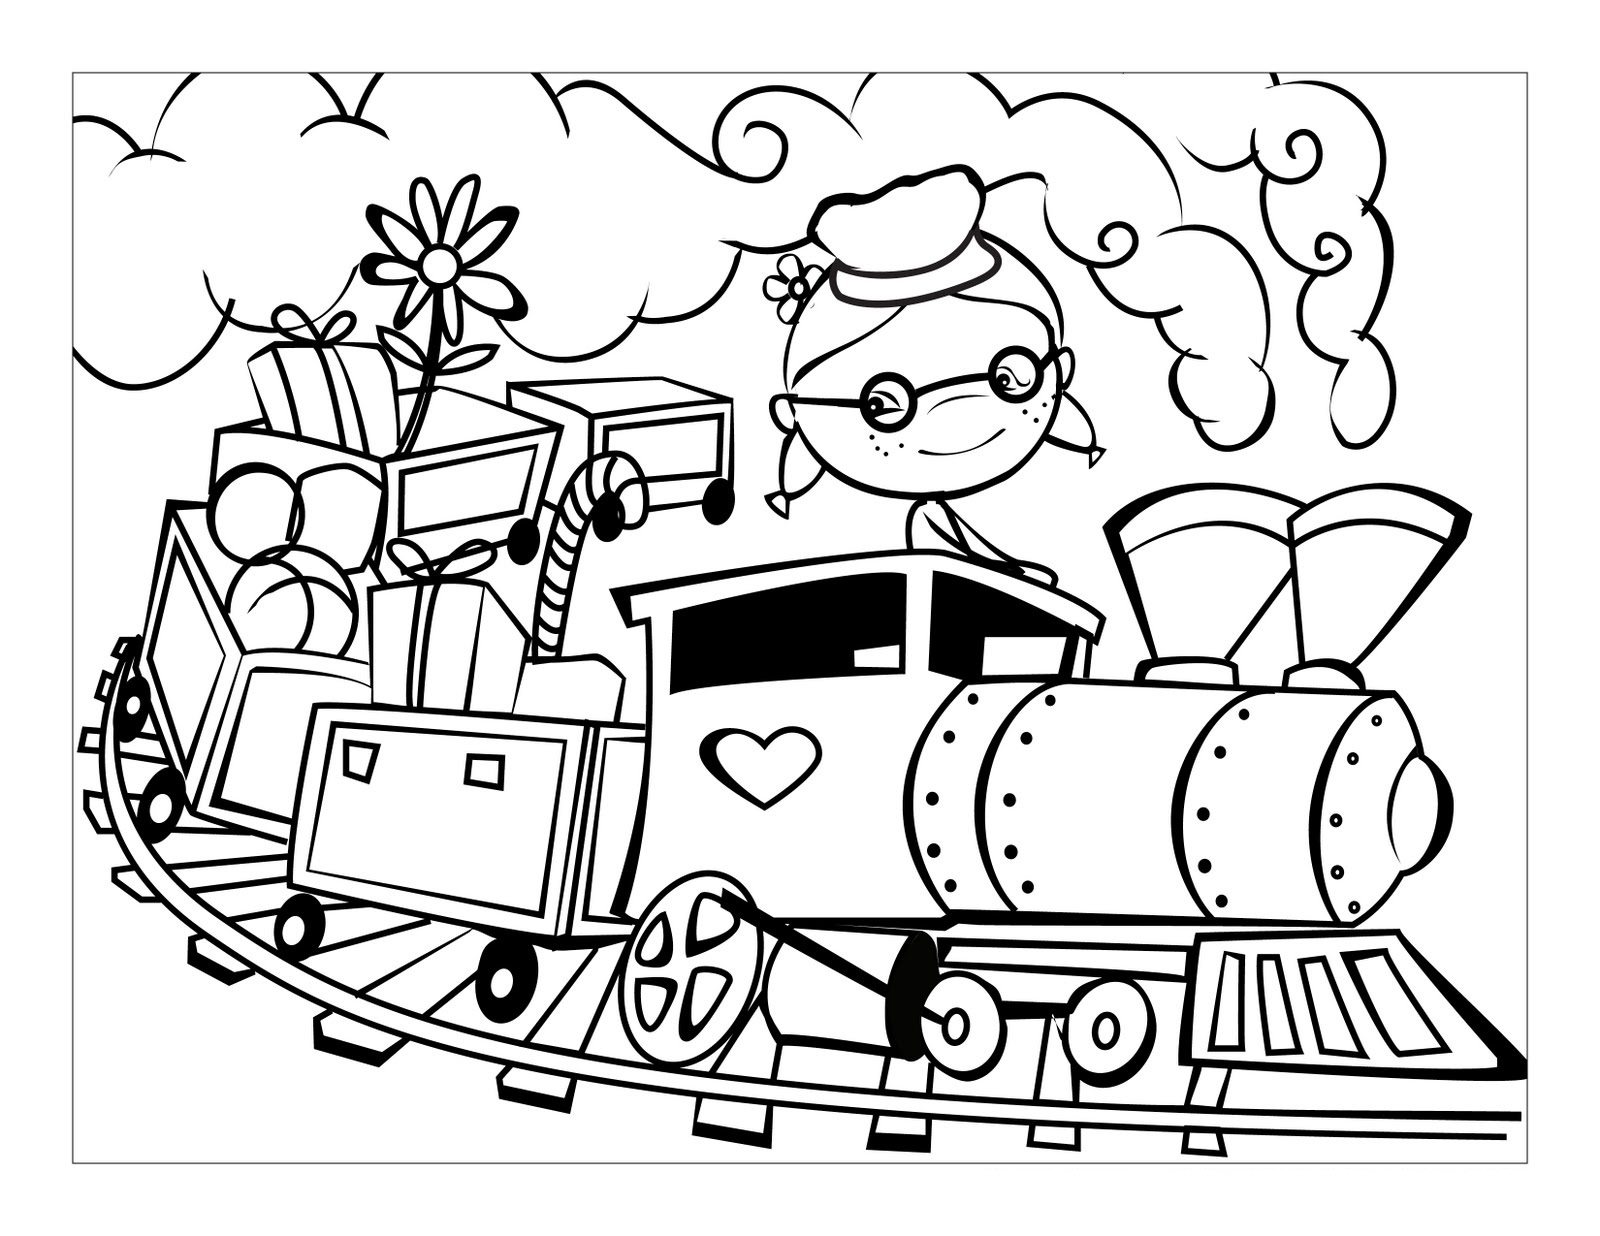 coloring train pages free printable train coloring pages for kids cool2bkids train pages coloring